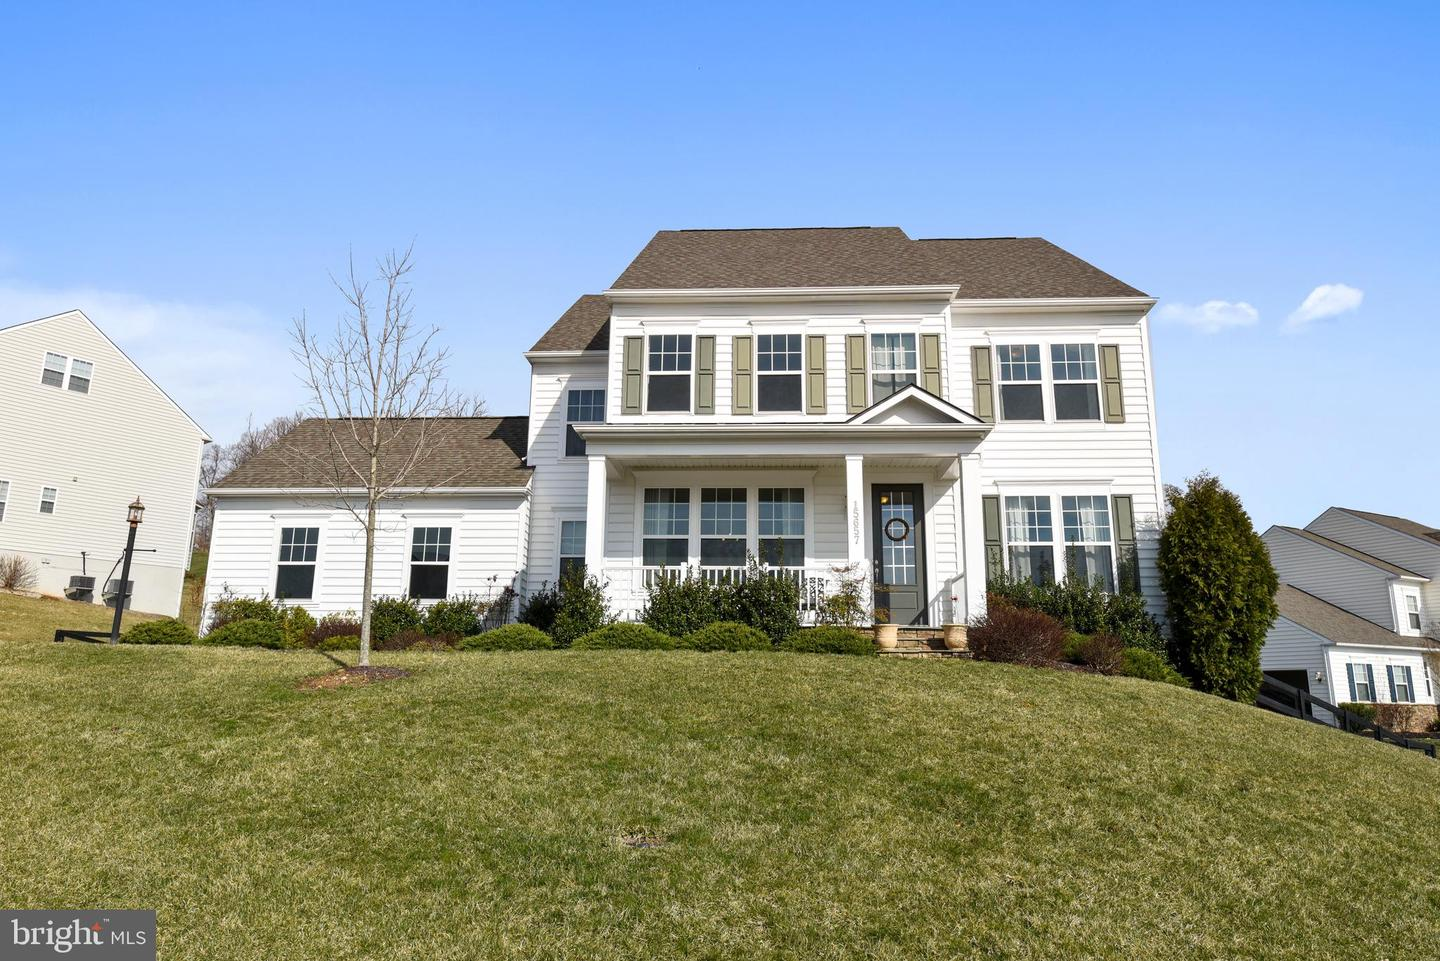 Single Family for Sale at 15657 Avebury Manor Pl 15657 Avebury Manor Pl Leesburg, Virginia 20176 United States